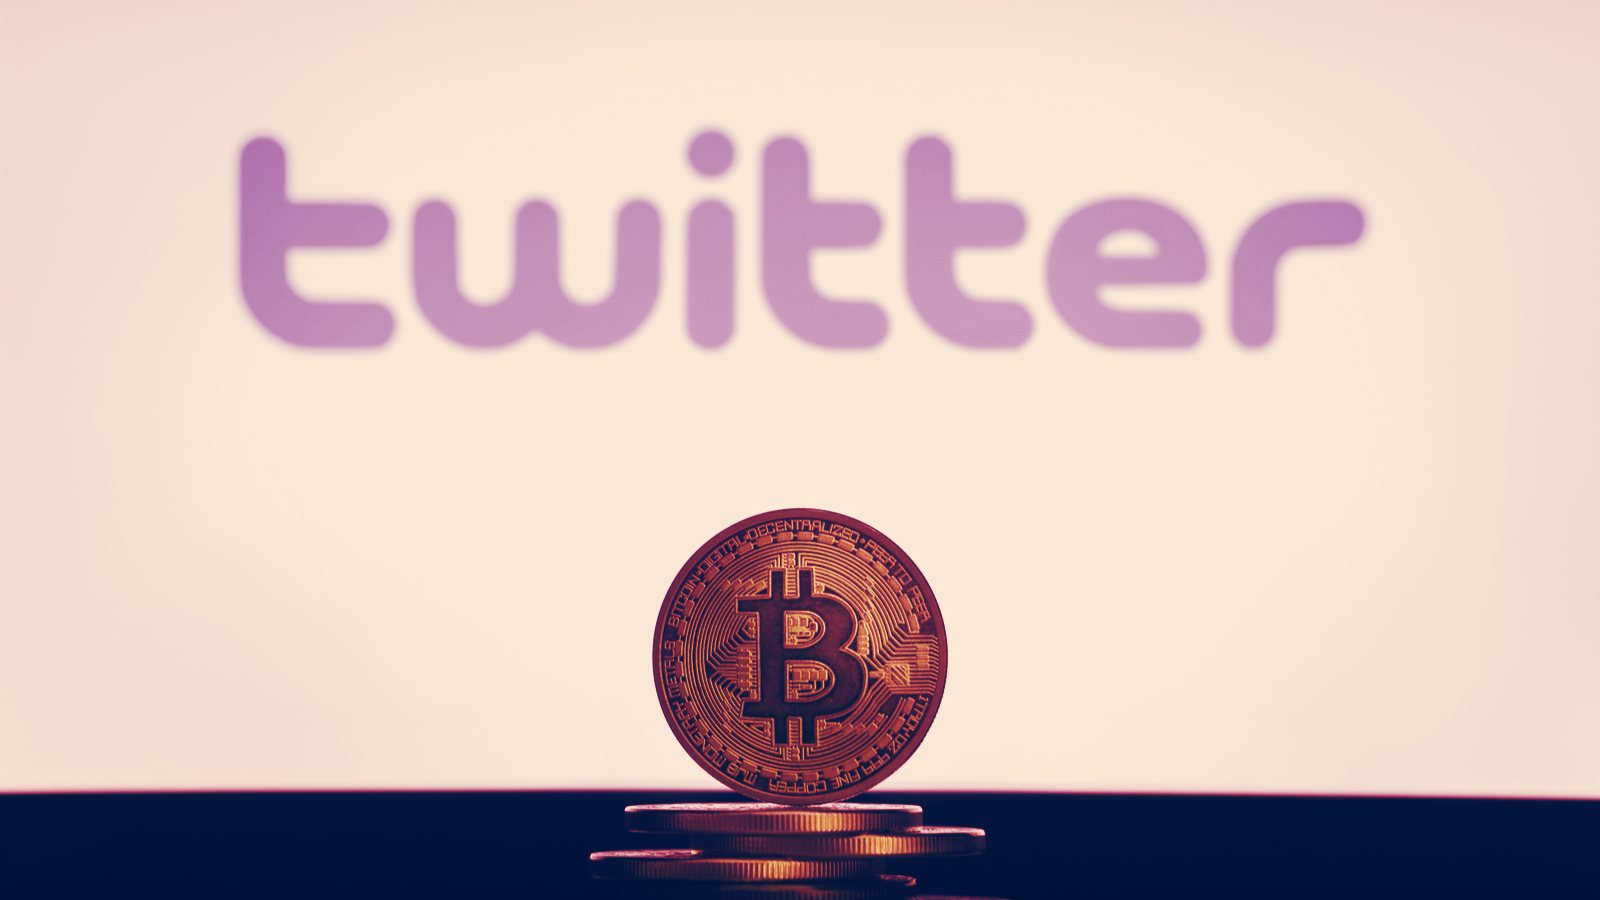 Bitcoin a 'Key Trend' for Twitter Says CEO Jack Dorsey